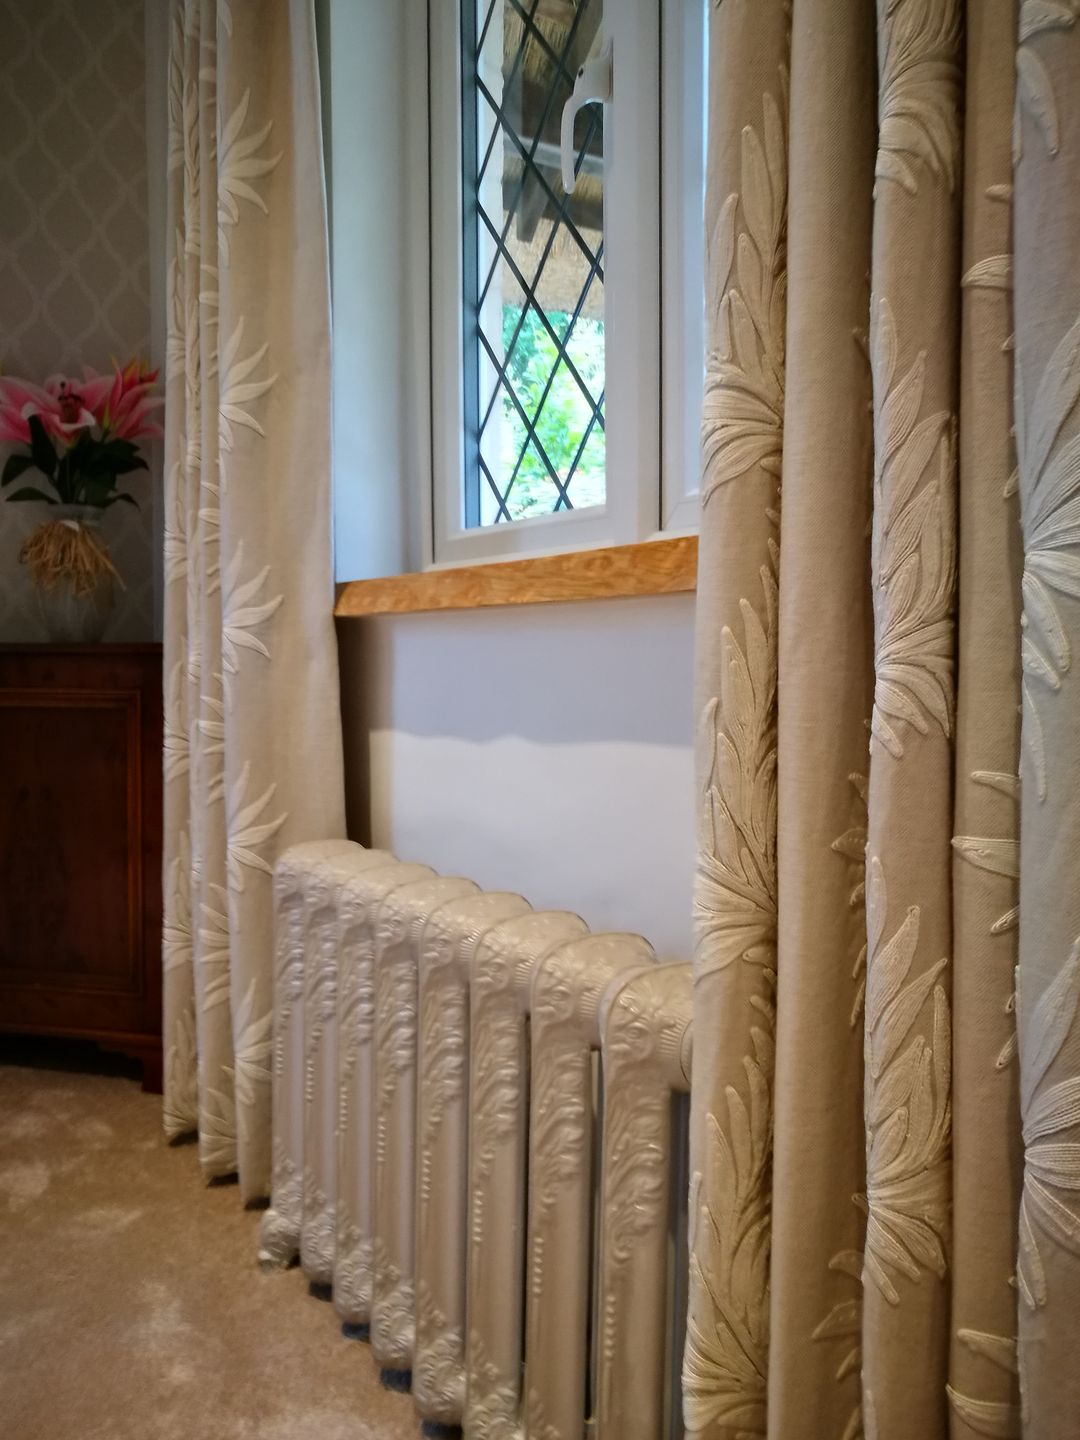 Curtains and radiator